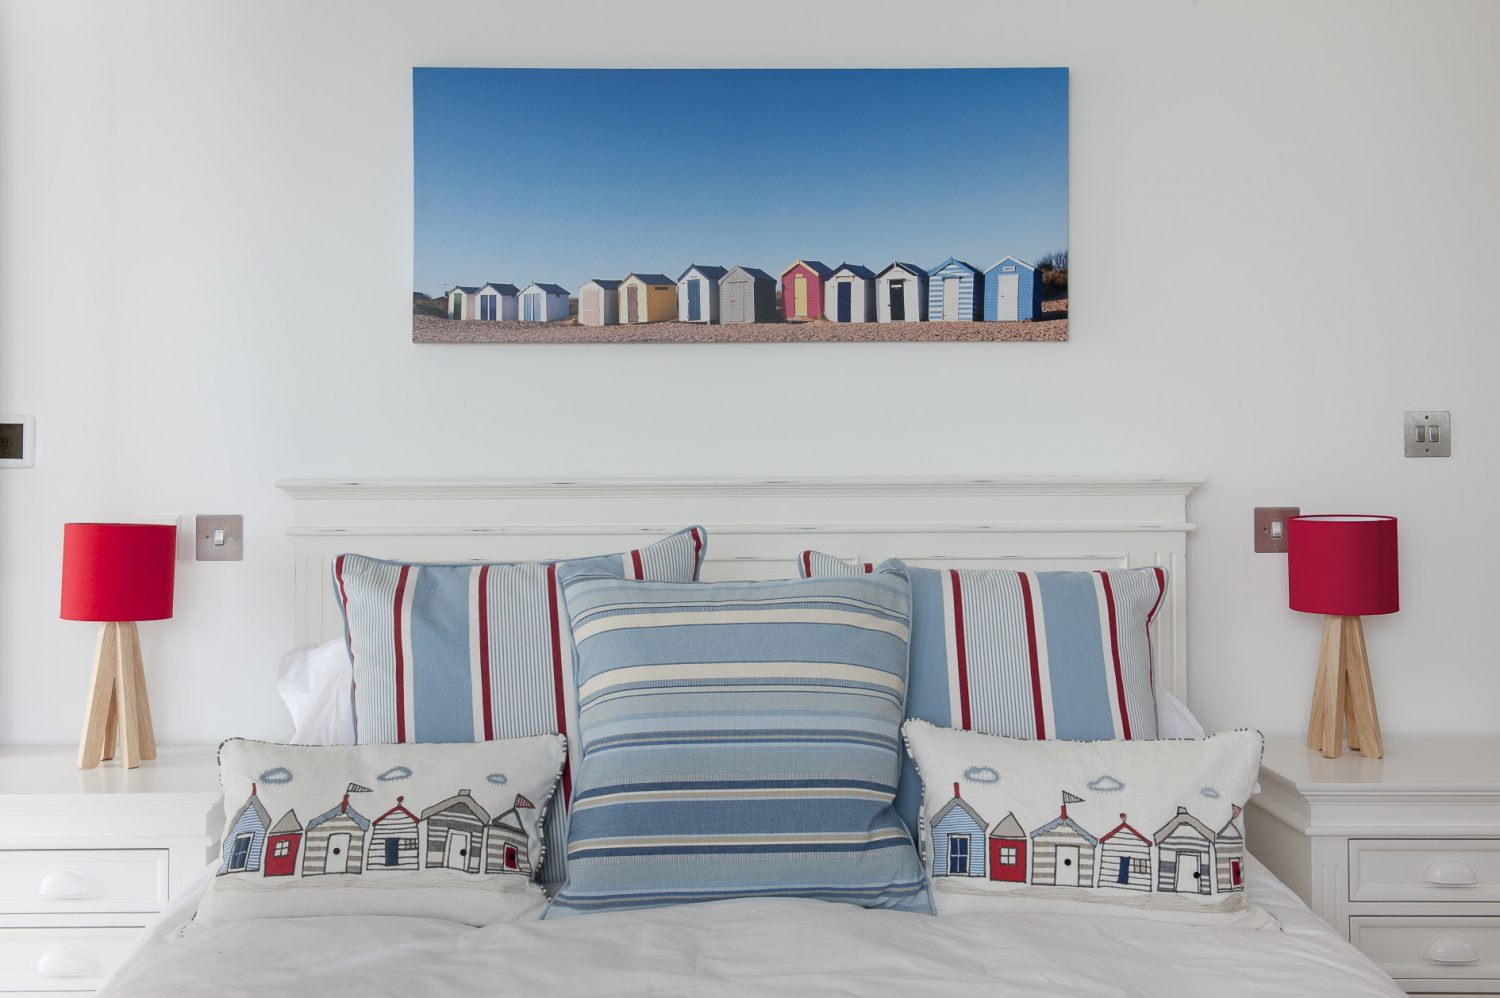 A guest bedroom is decorated in Sea Gem's signature nautical colours, with bold, sky blue and scarlet stripes set against pure white bedlinen. On the wall above the bed is a vividly coloured wide angle photograph of painted beach huts by Gill Copeland